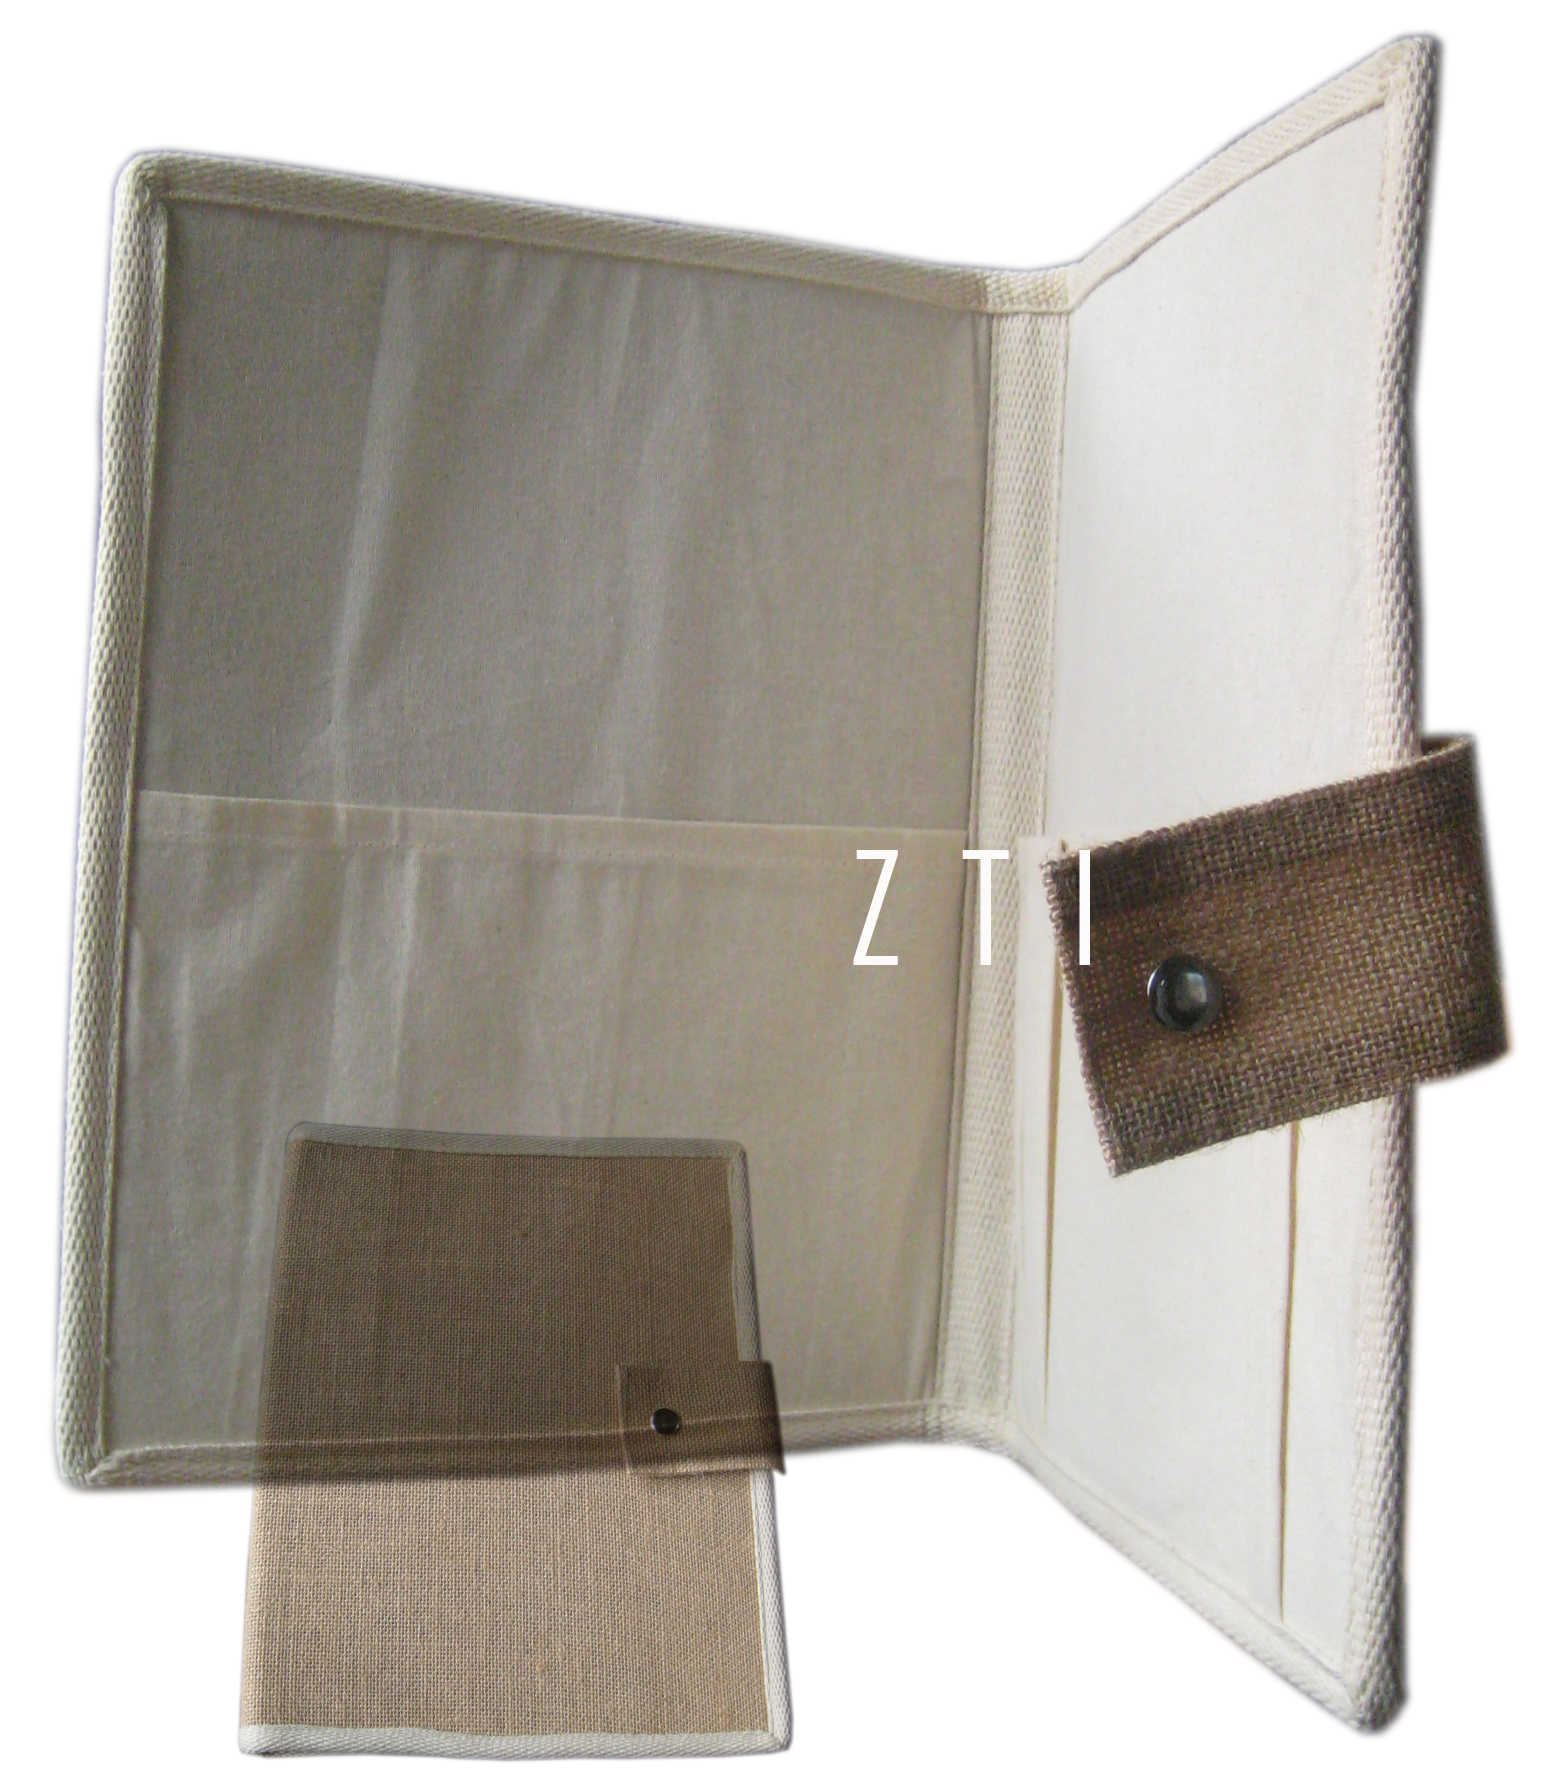 MODEL-NO.-1242-SIZE-26x34cms.-PRICE-USD-1.40